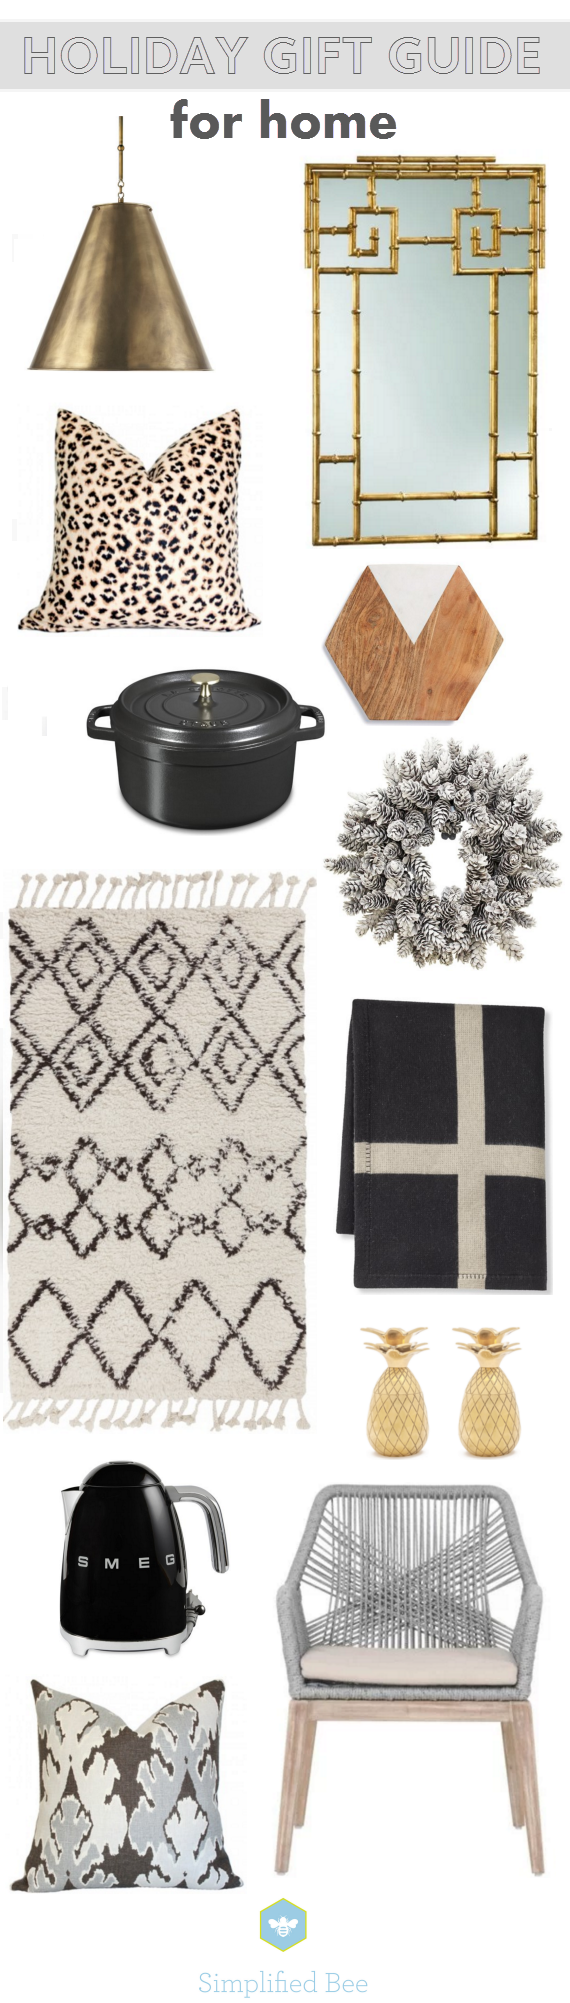 holiday gift guide 2015 // for home // via @simplifiedbee